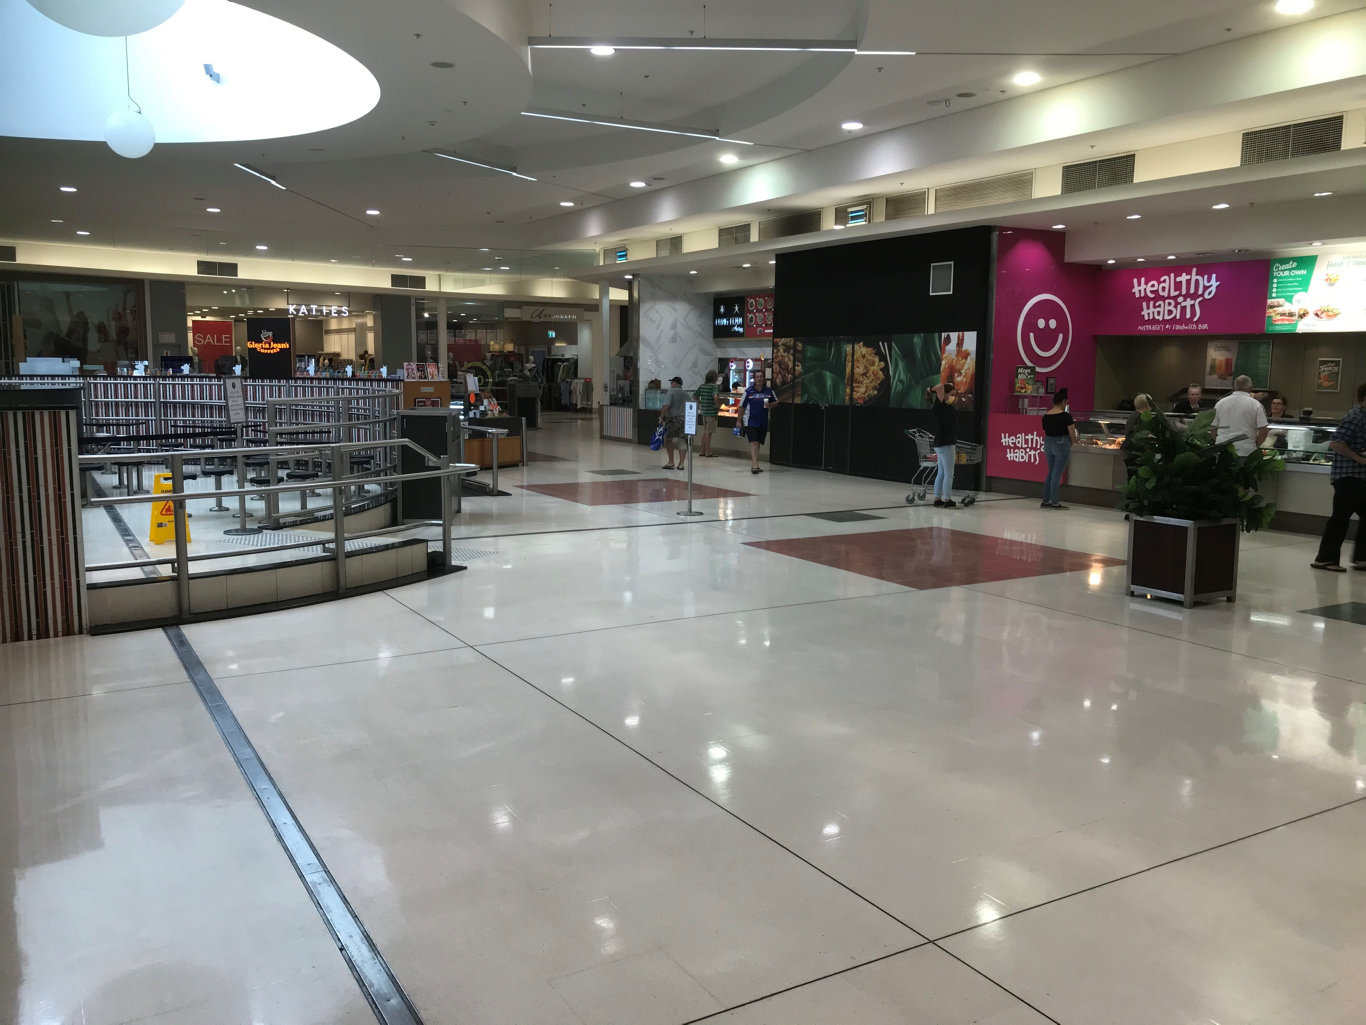 The food court at Grafton Shoppingworld is almost deserted during peak lunch time on Wednesday, 25th March, 2020, with all tables and chairs removed due to takeaway-only restrictions due to social distancing measures to prevent the spread of coronavirus.